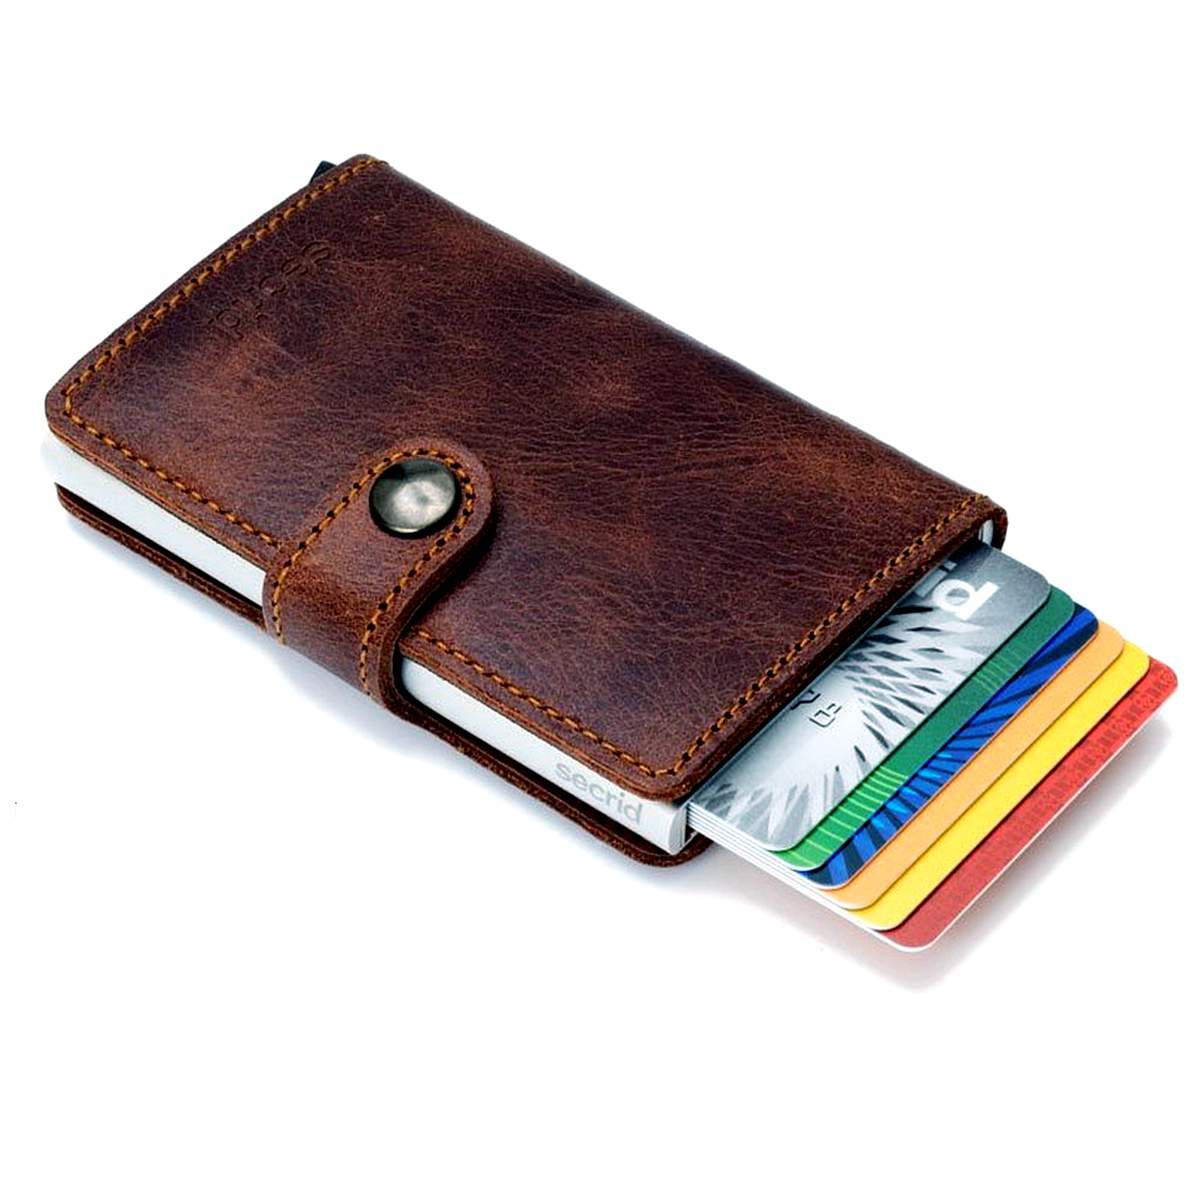 Secrid RFID secure credit card miniwallet vintage brown leather